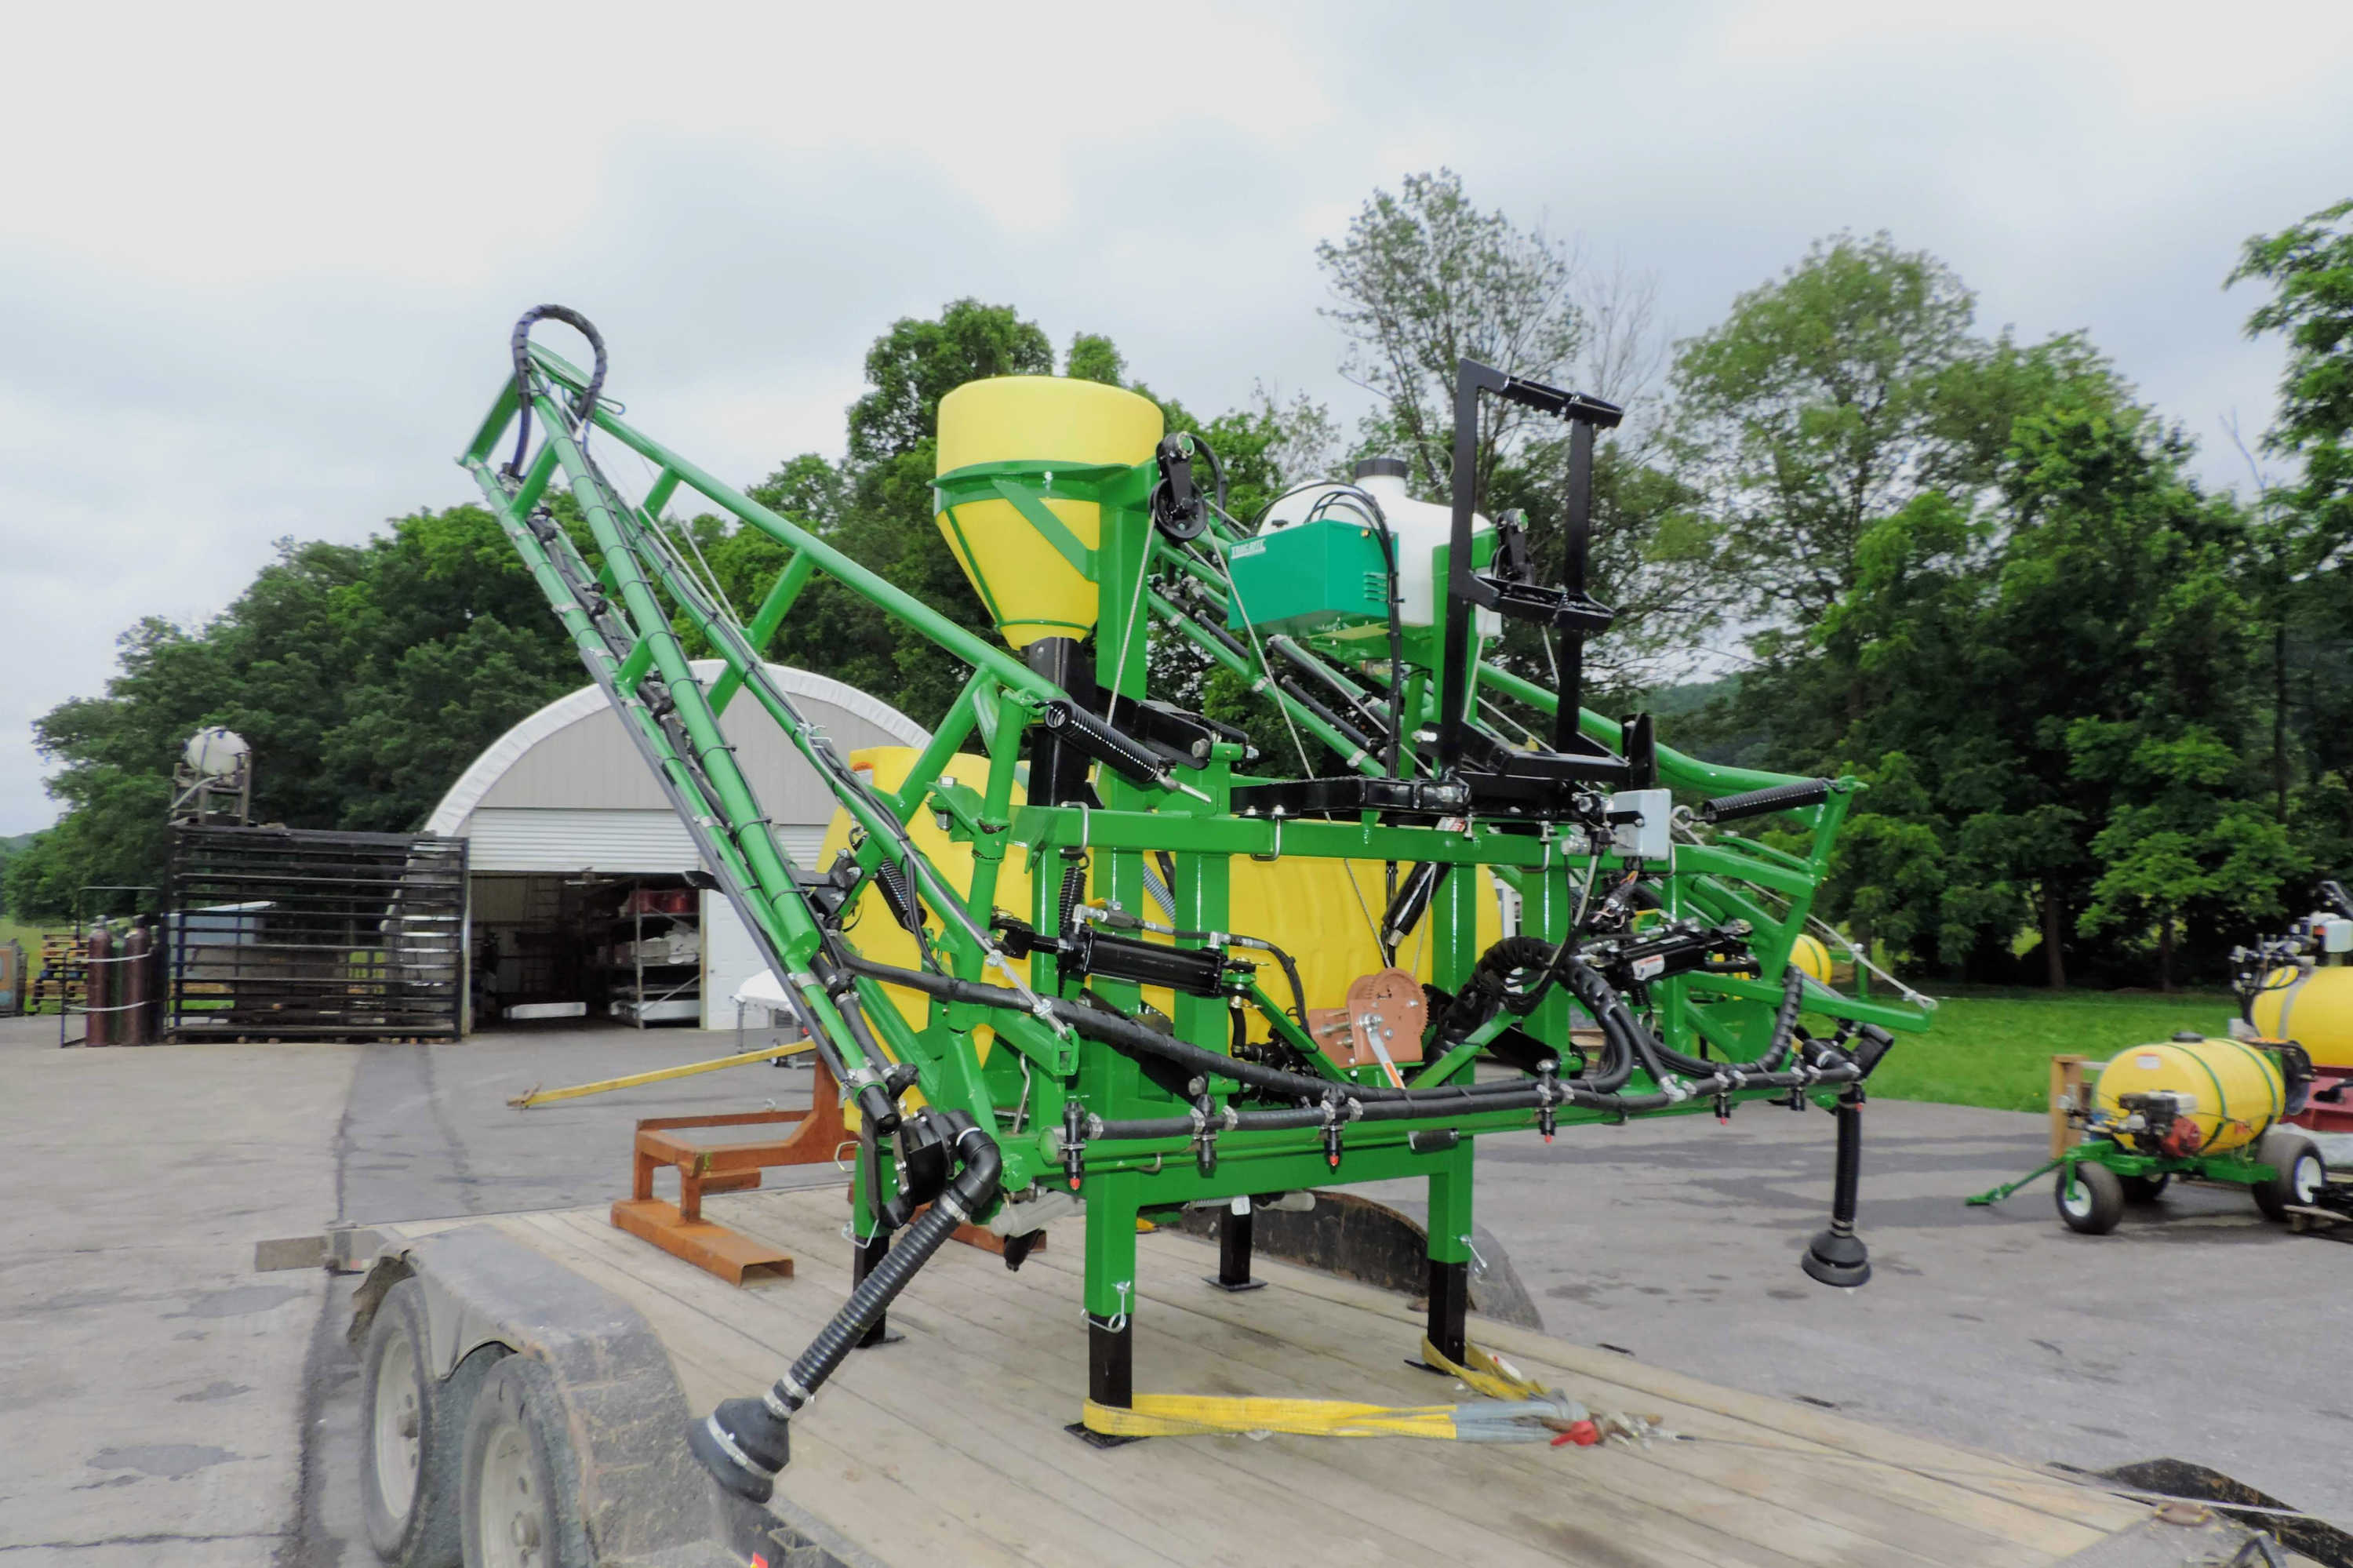 200 gallon 3-point Hitch Crop Sprayer with 45' SpringRide booms